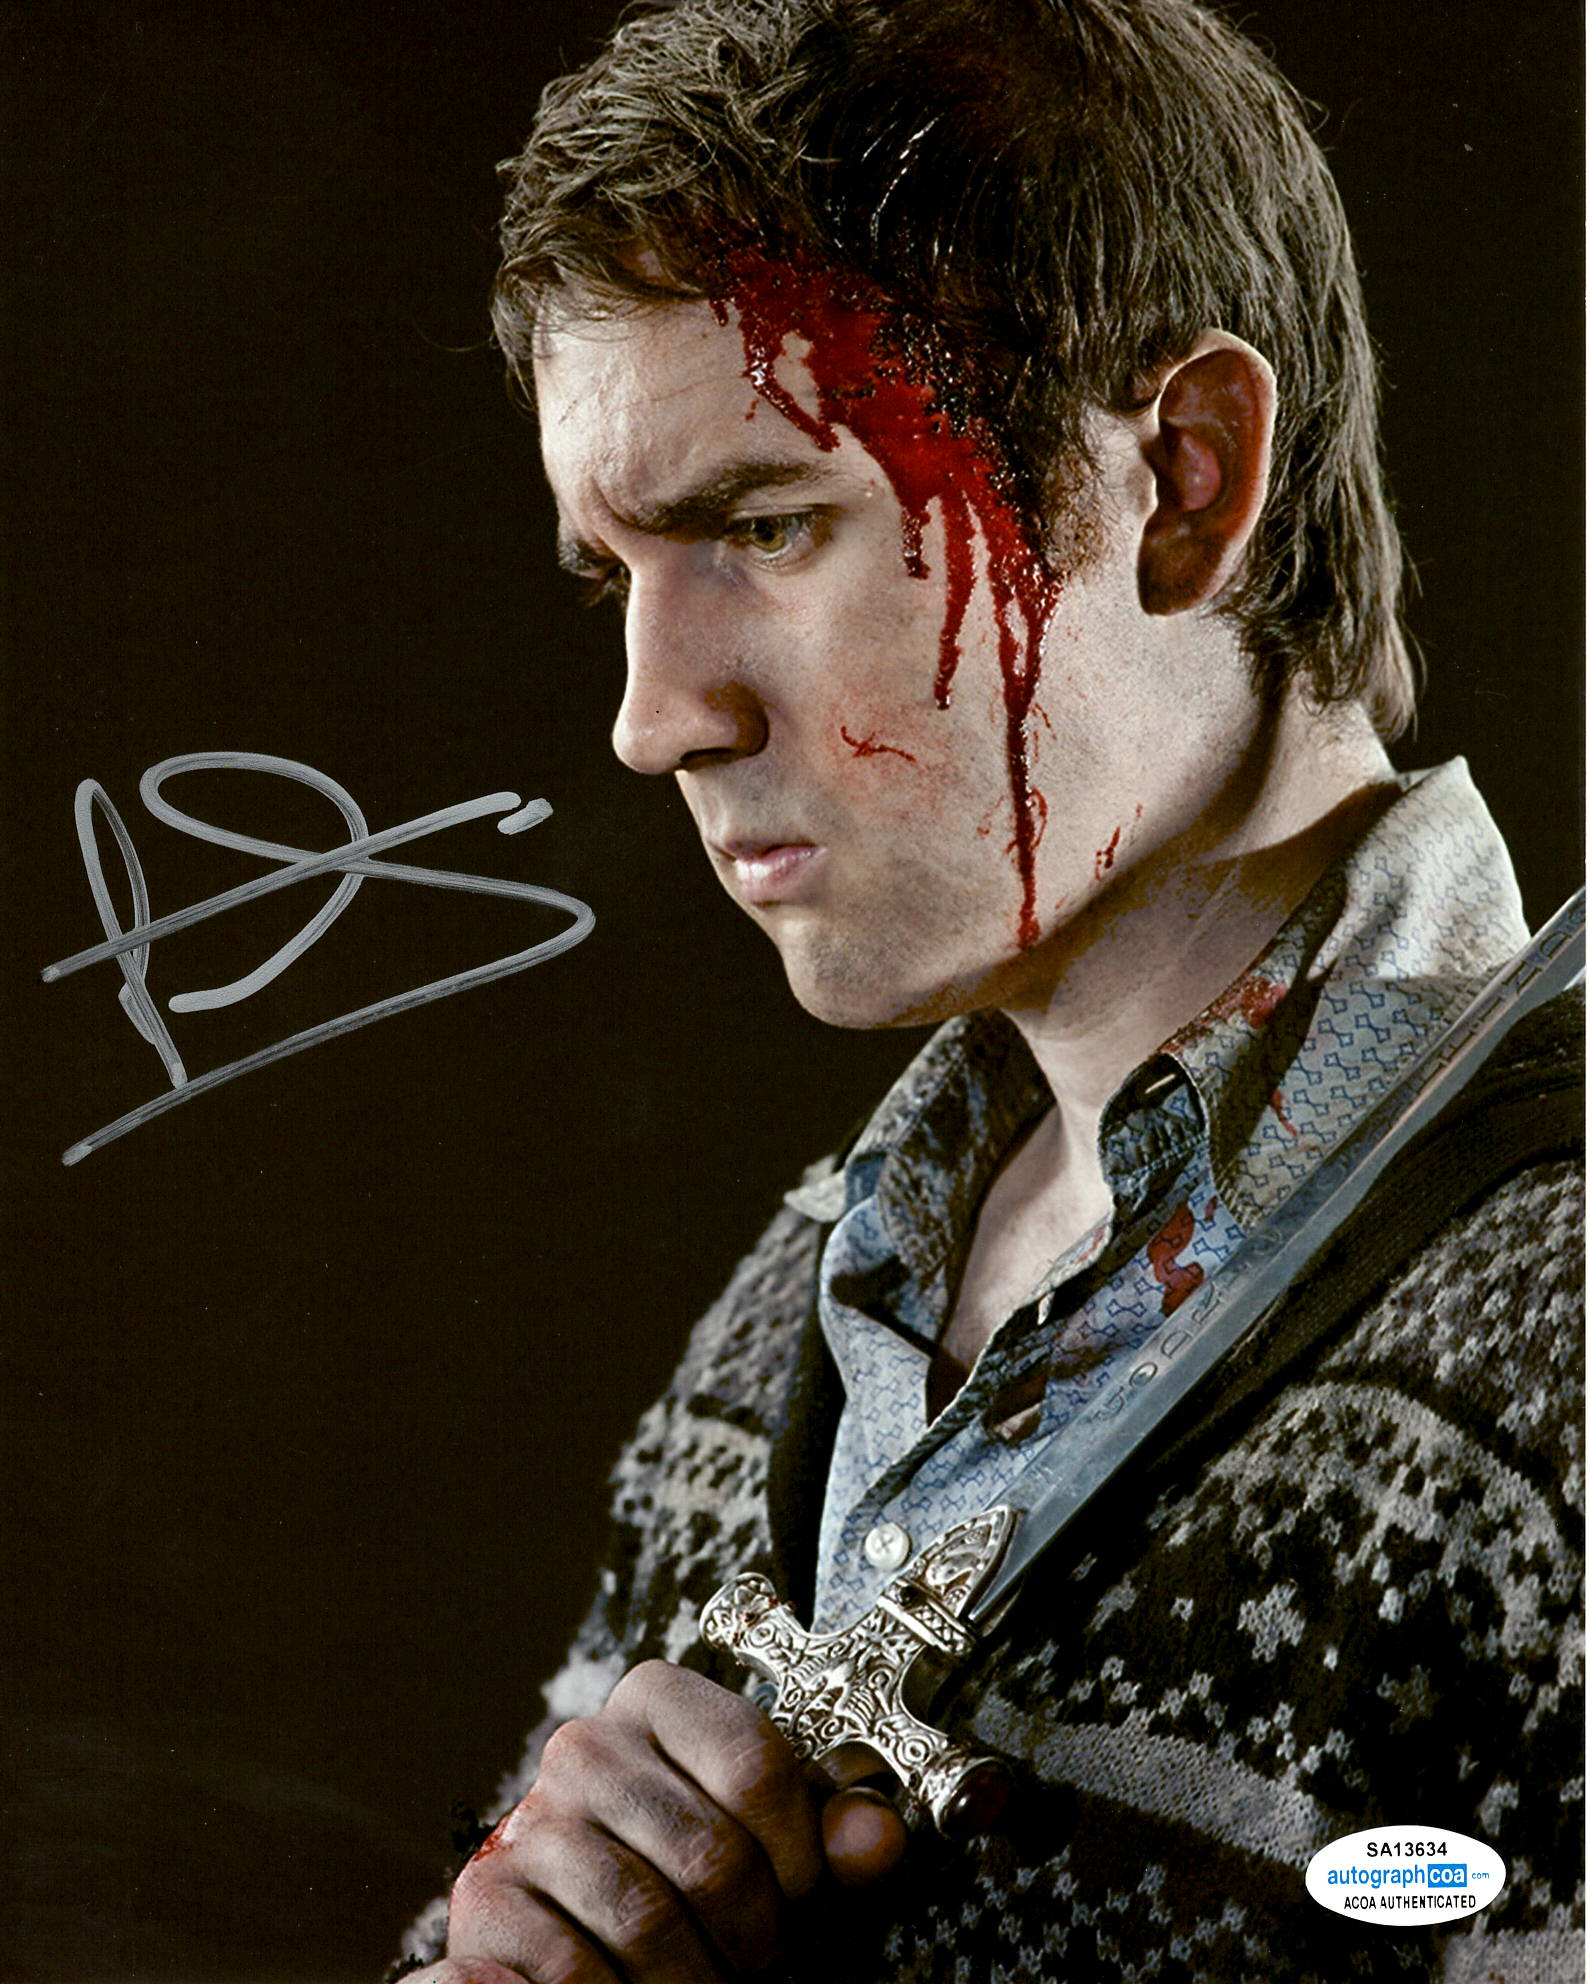 Matthew Matt Lewis Harry Potter Signed Autograph 8x10 Photo #3 - Outlaw Hobbies Authentic Autographs